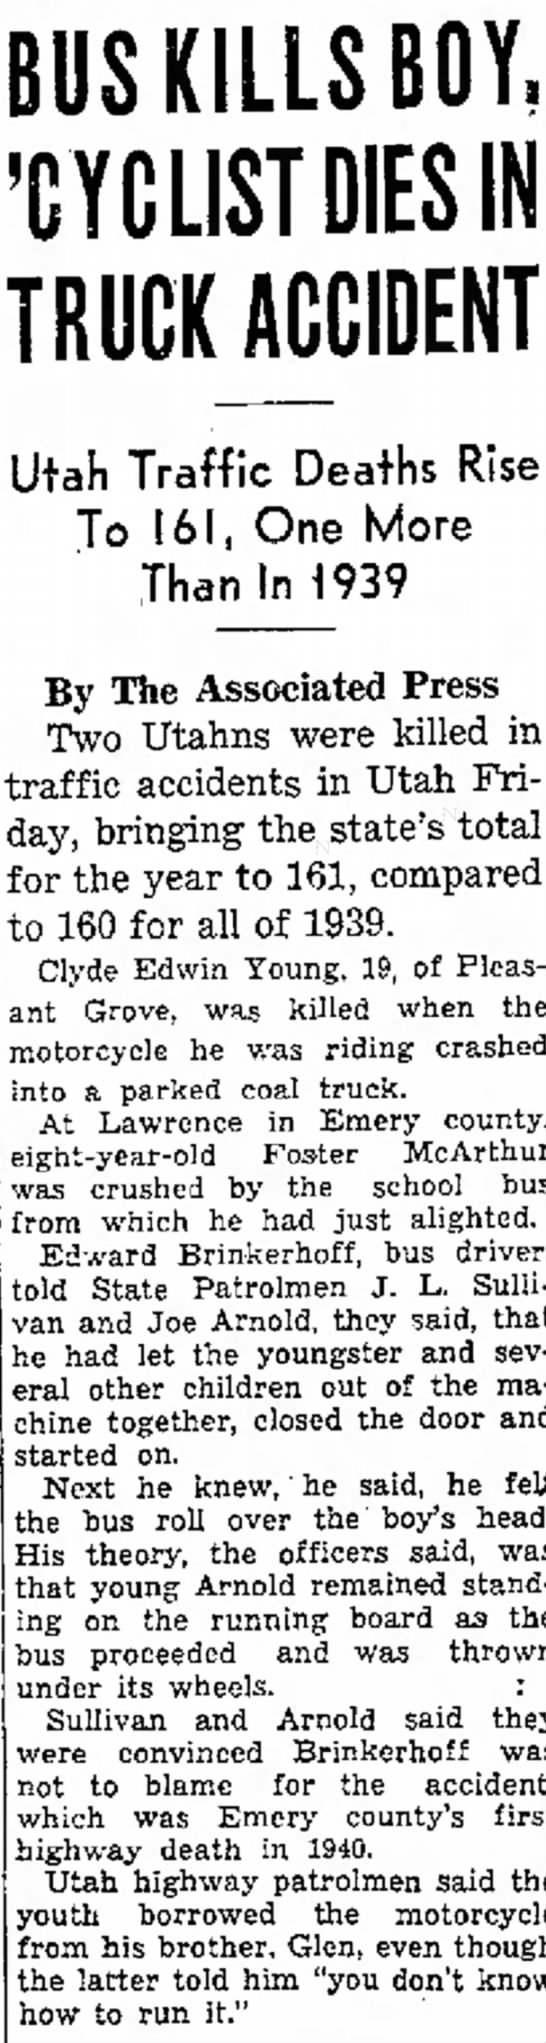 21 Dec 1940 Bus Kills Boy, 'Cyclist Dies in Truck Accident, Edward Brinkerhoff -